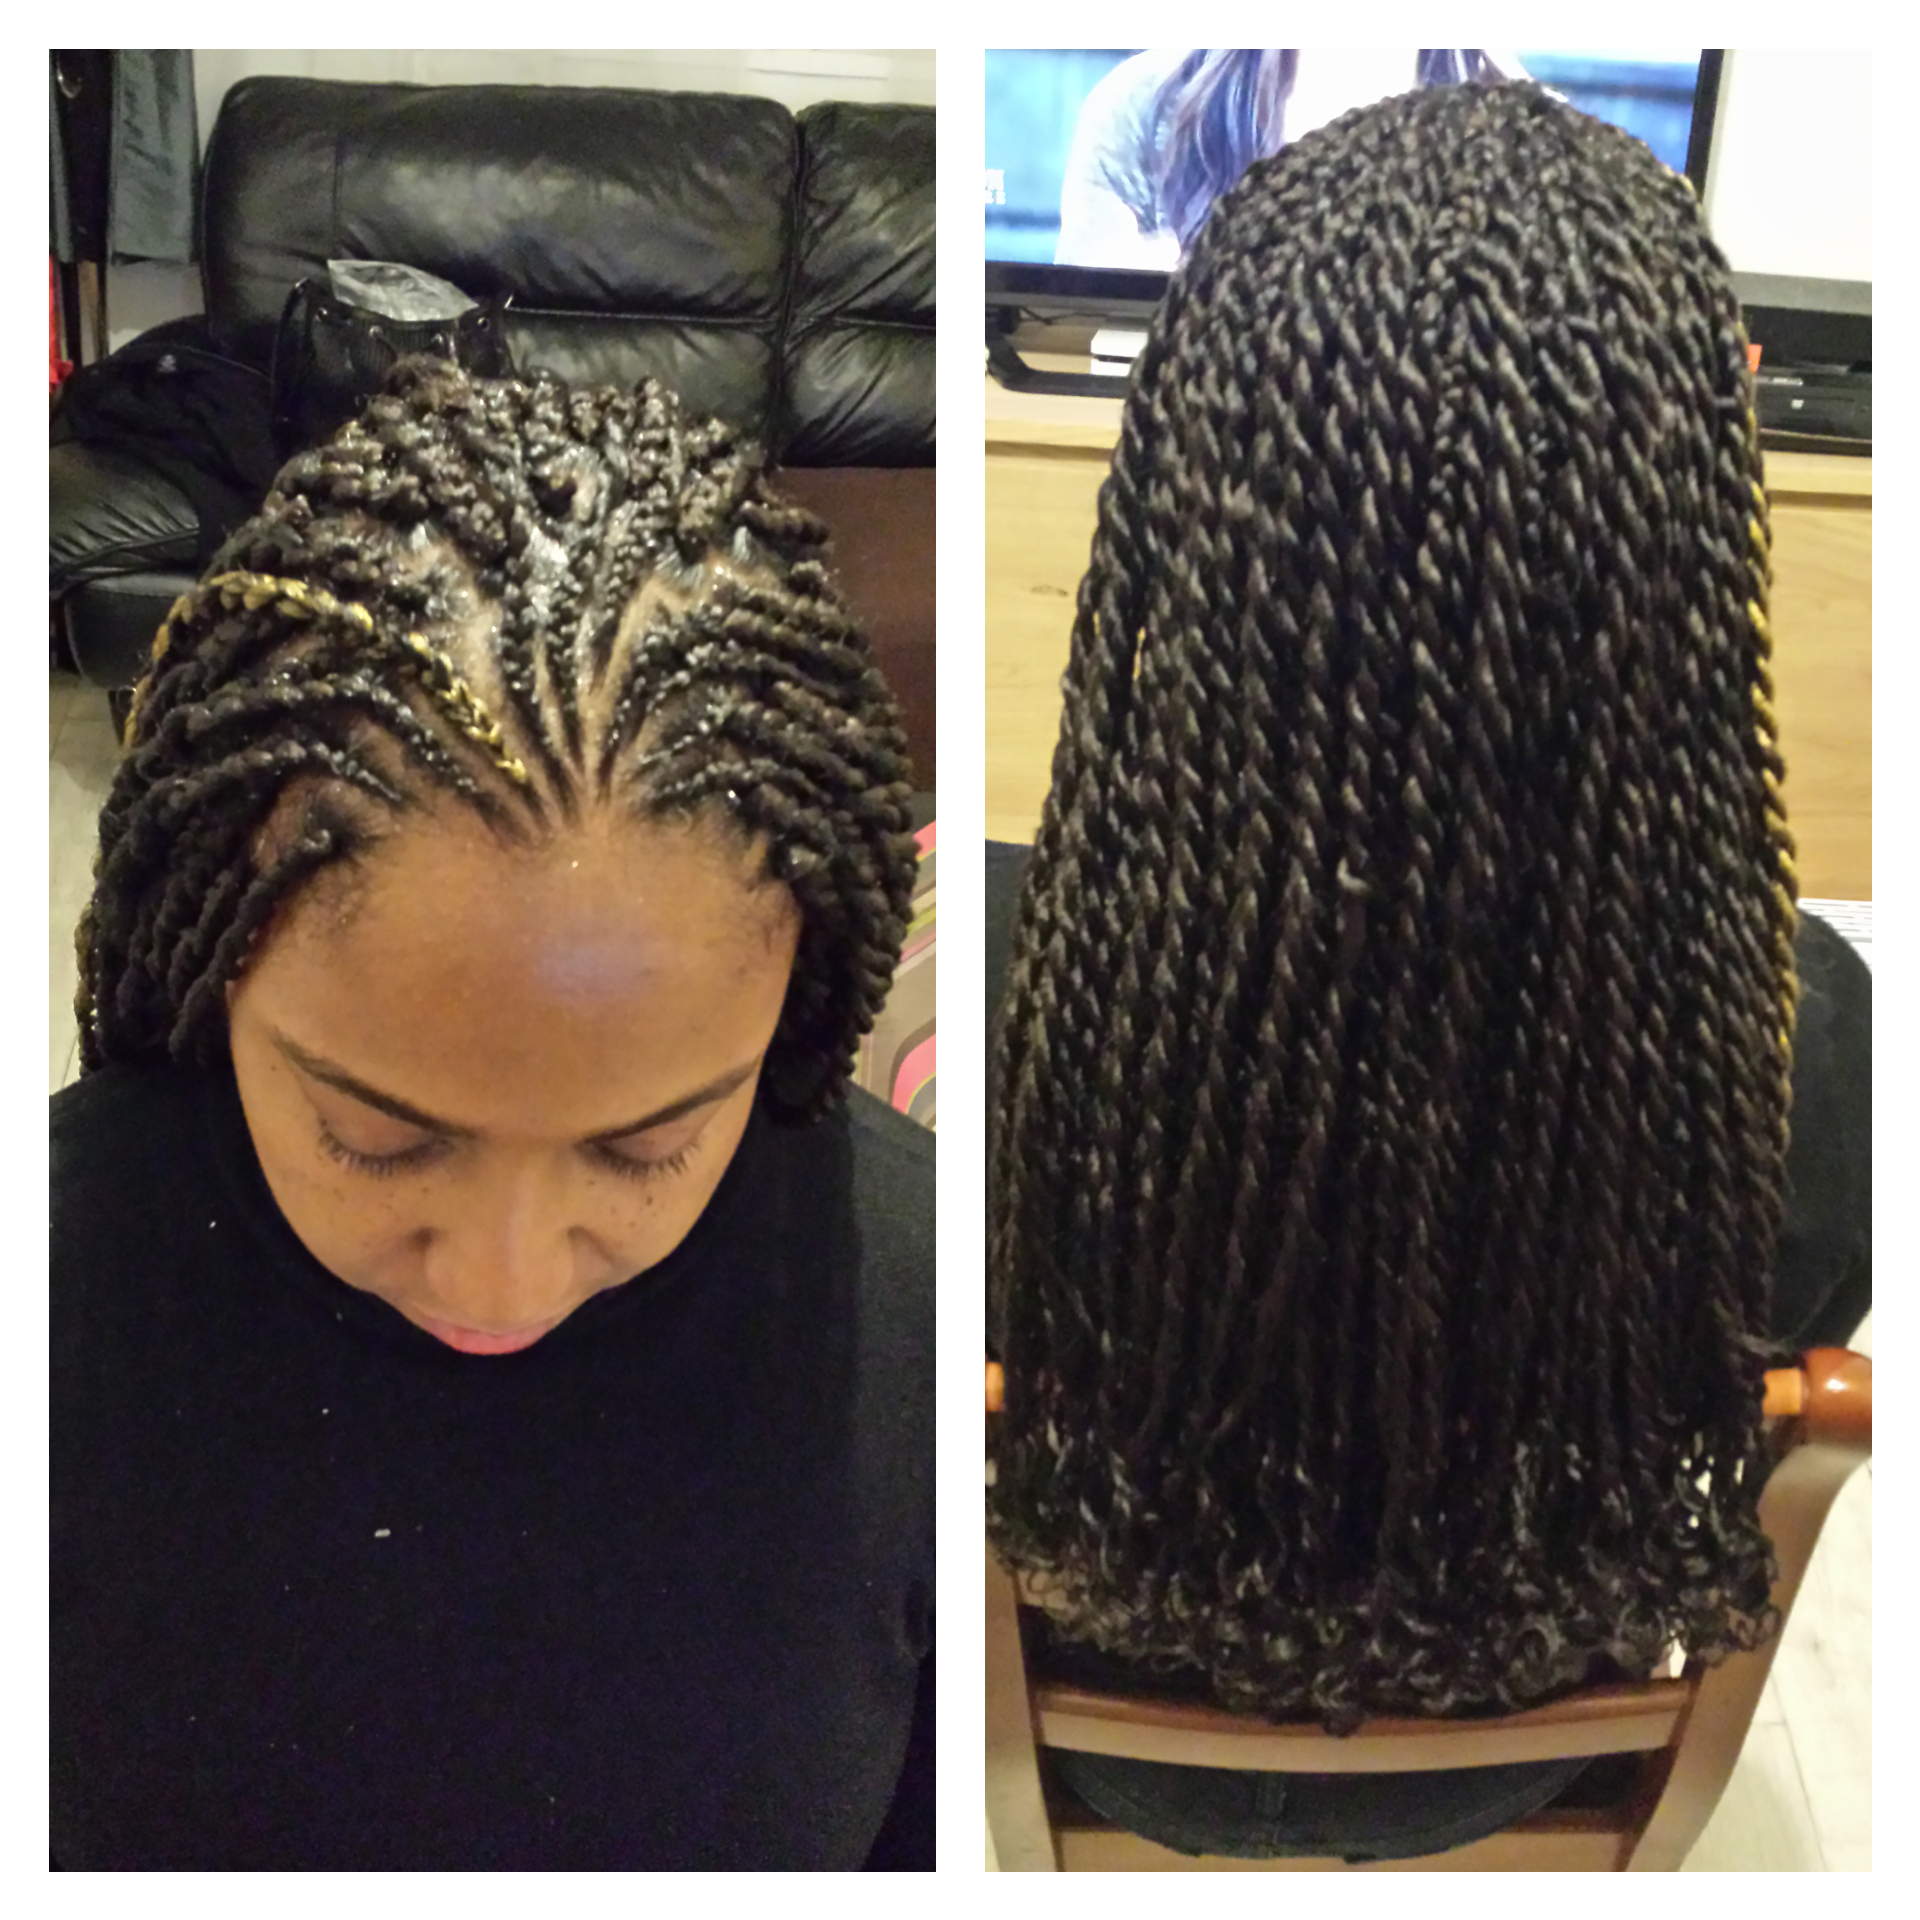 salon de coiffure afro tresse tresses box braids crochet braids vanilles tissages paris 75 77 78 91 92 93 94 95 EJUOCVRW